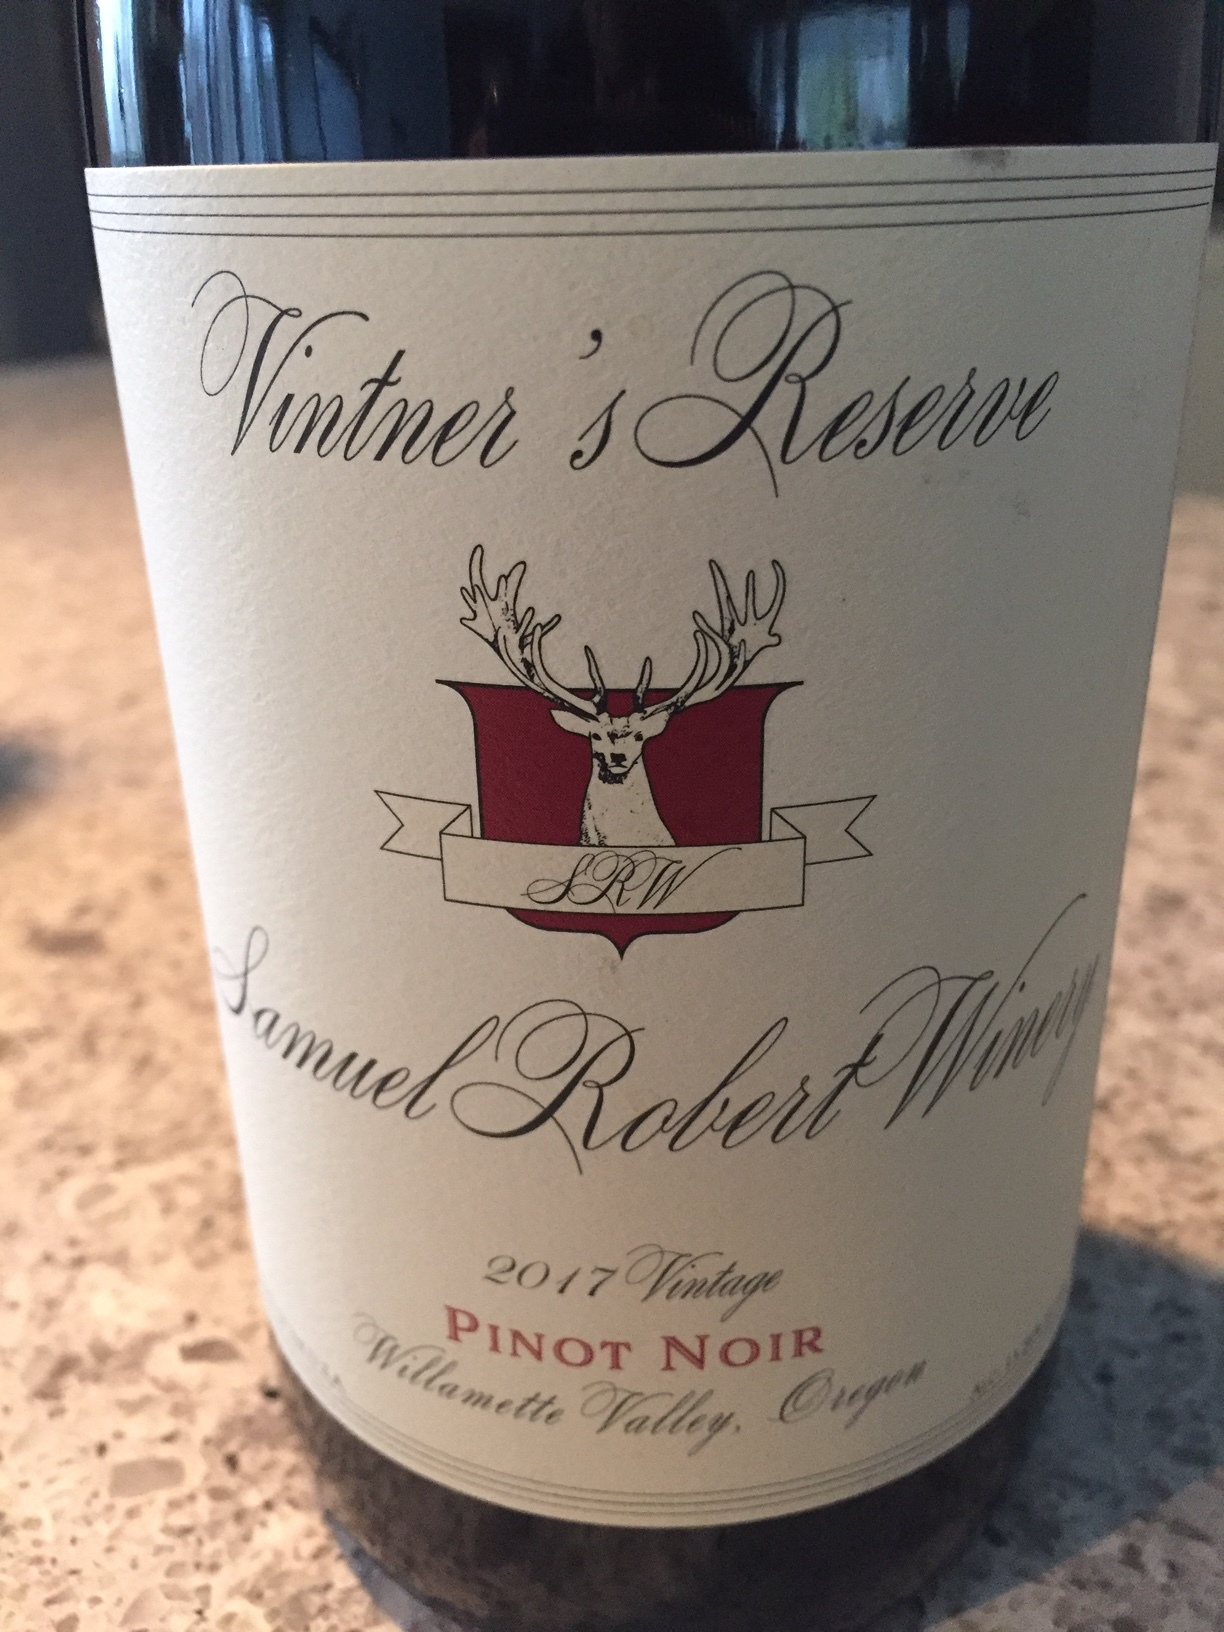 Episode 42: Vintner's Reserve Pinot Noir from Samuel Robert Winery in Oregon